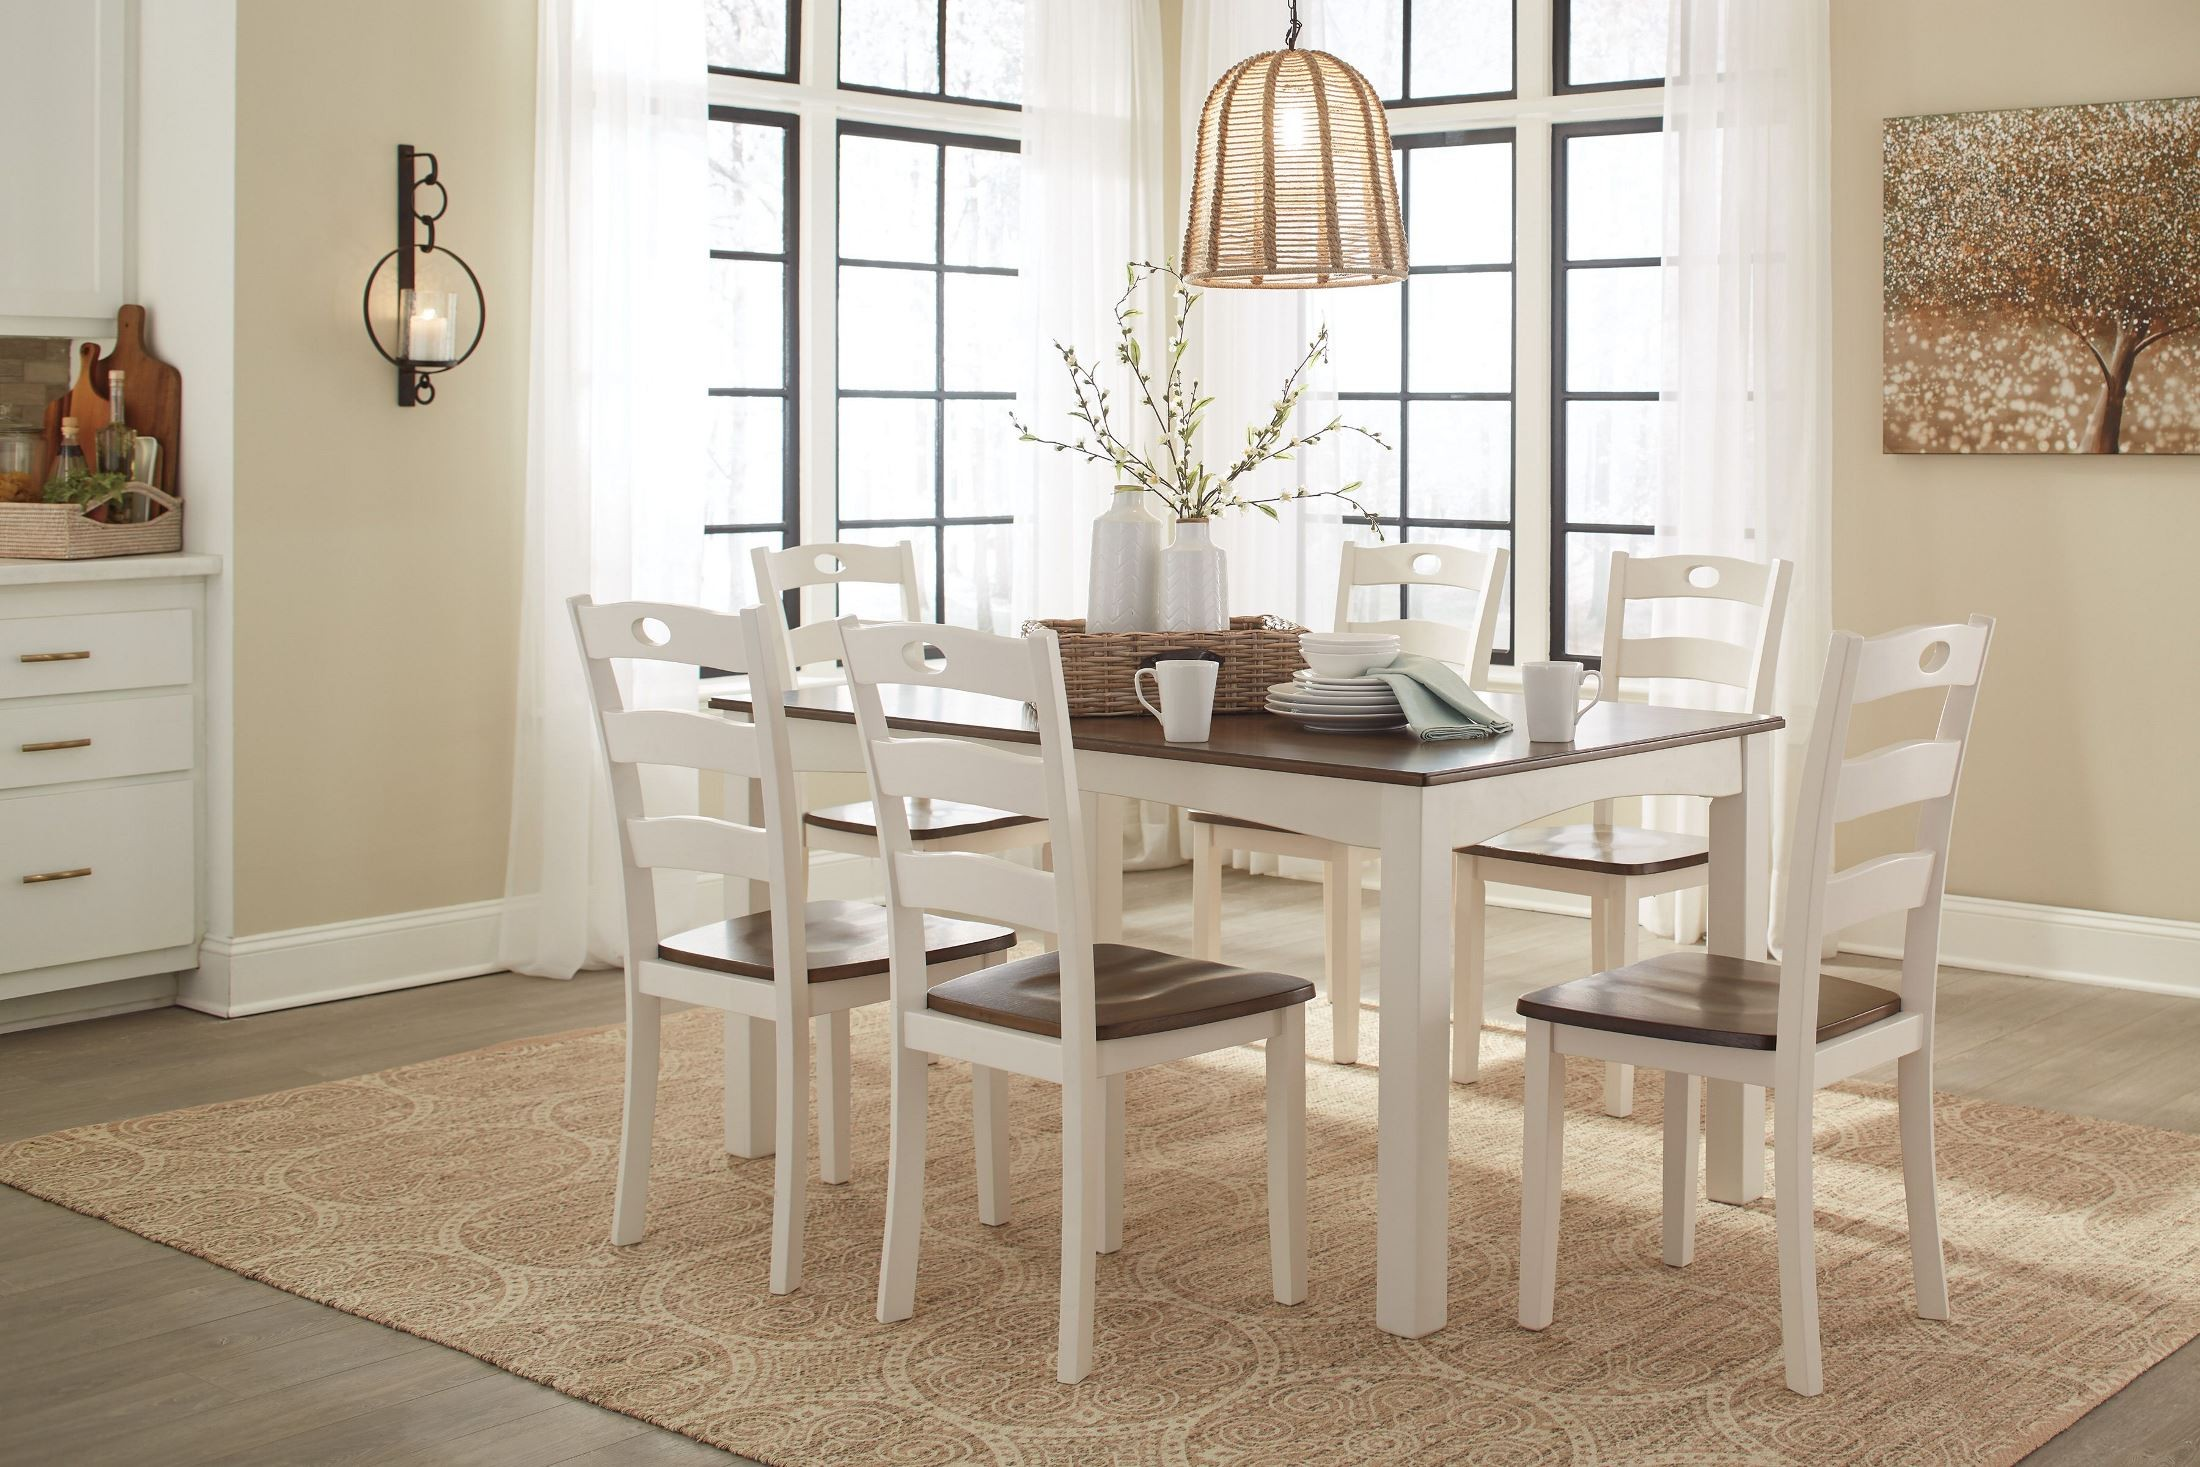 White Dining Room Set Sale Woodanville White And Brown 7 Piece Dining Room Set From